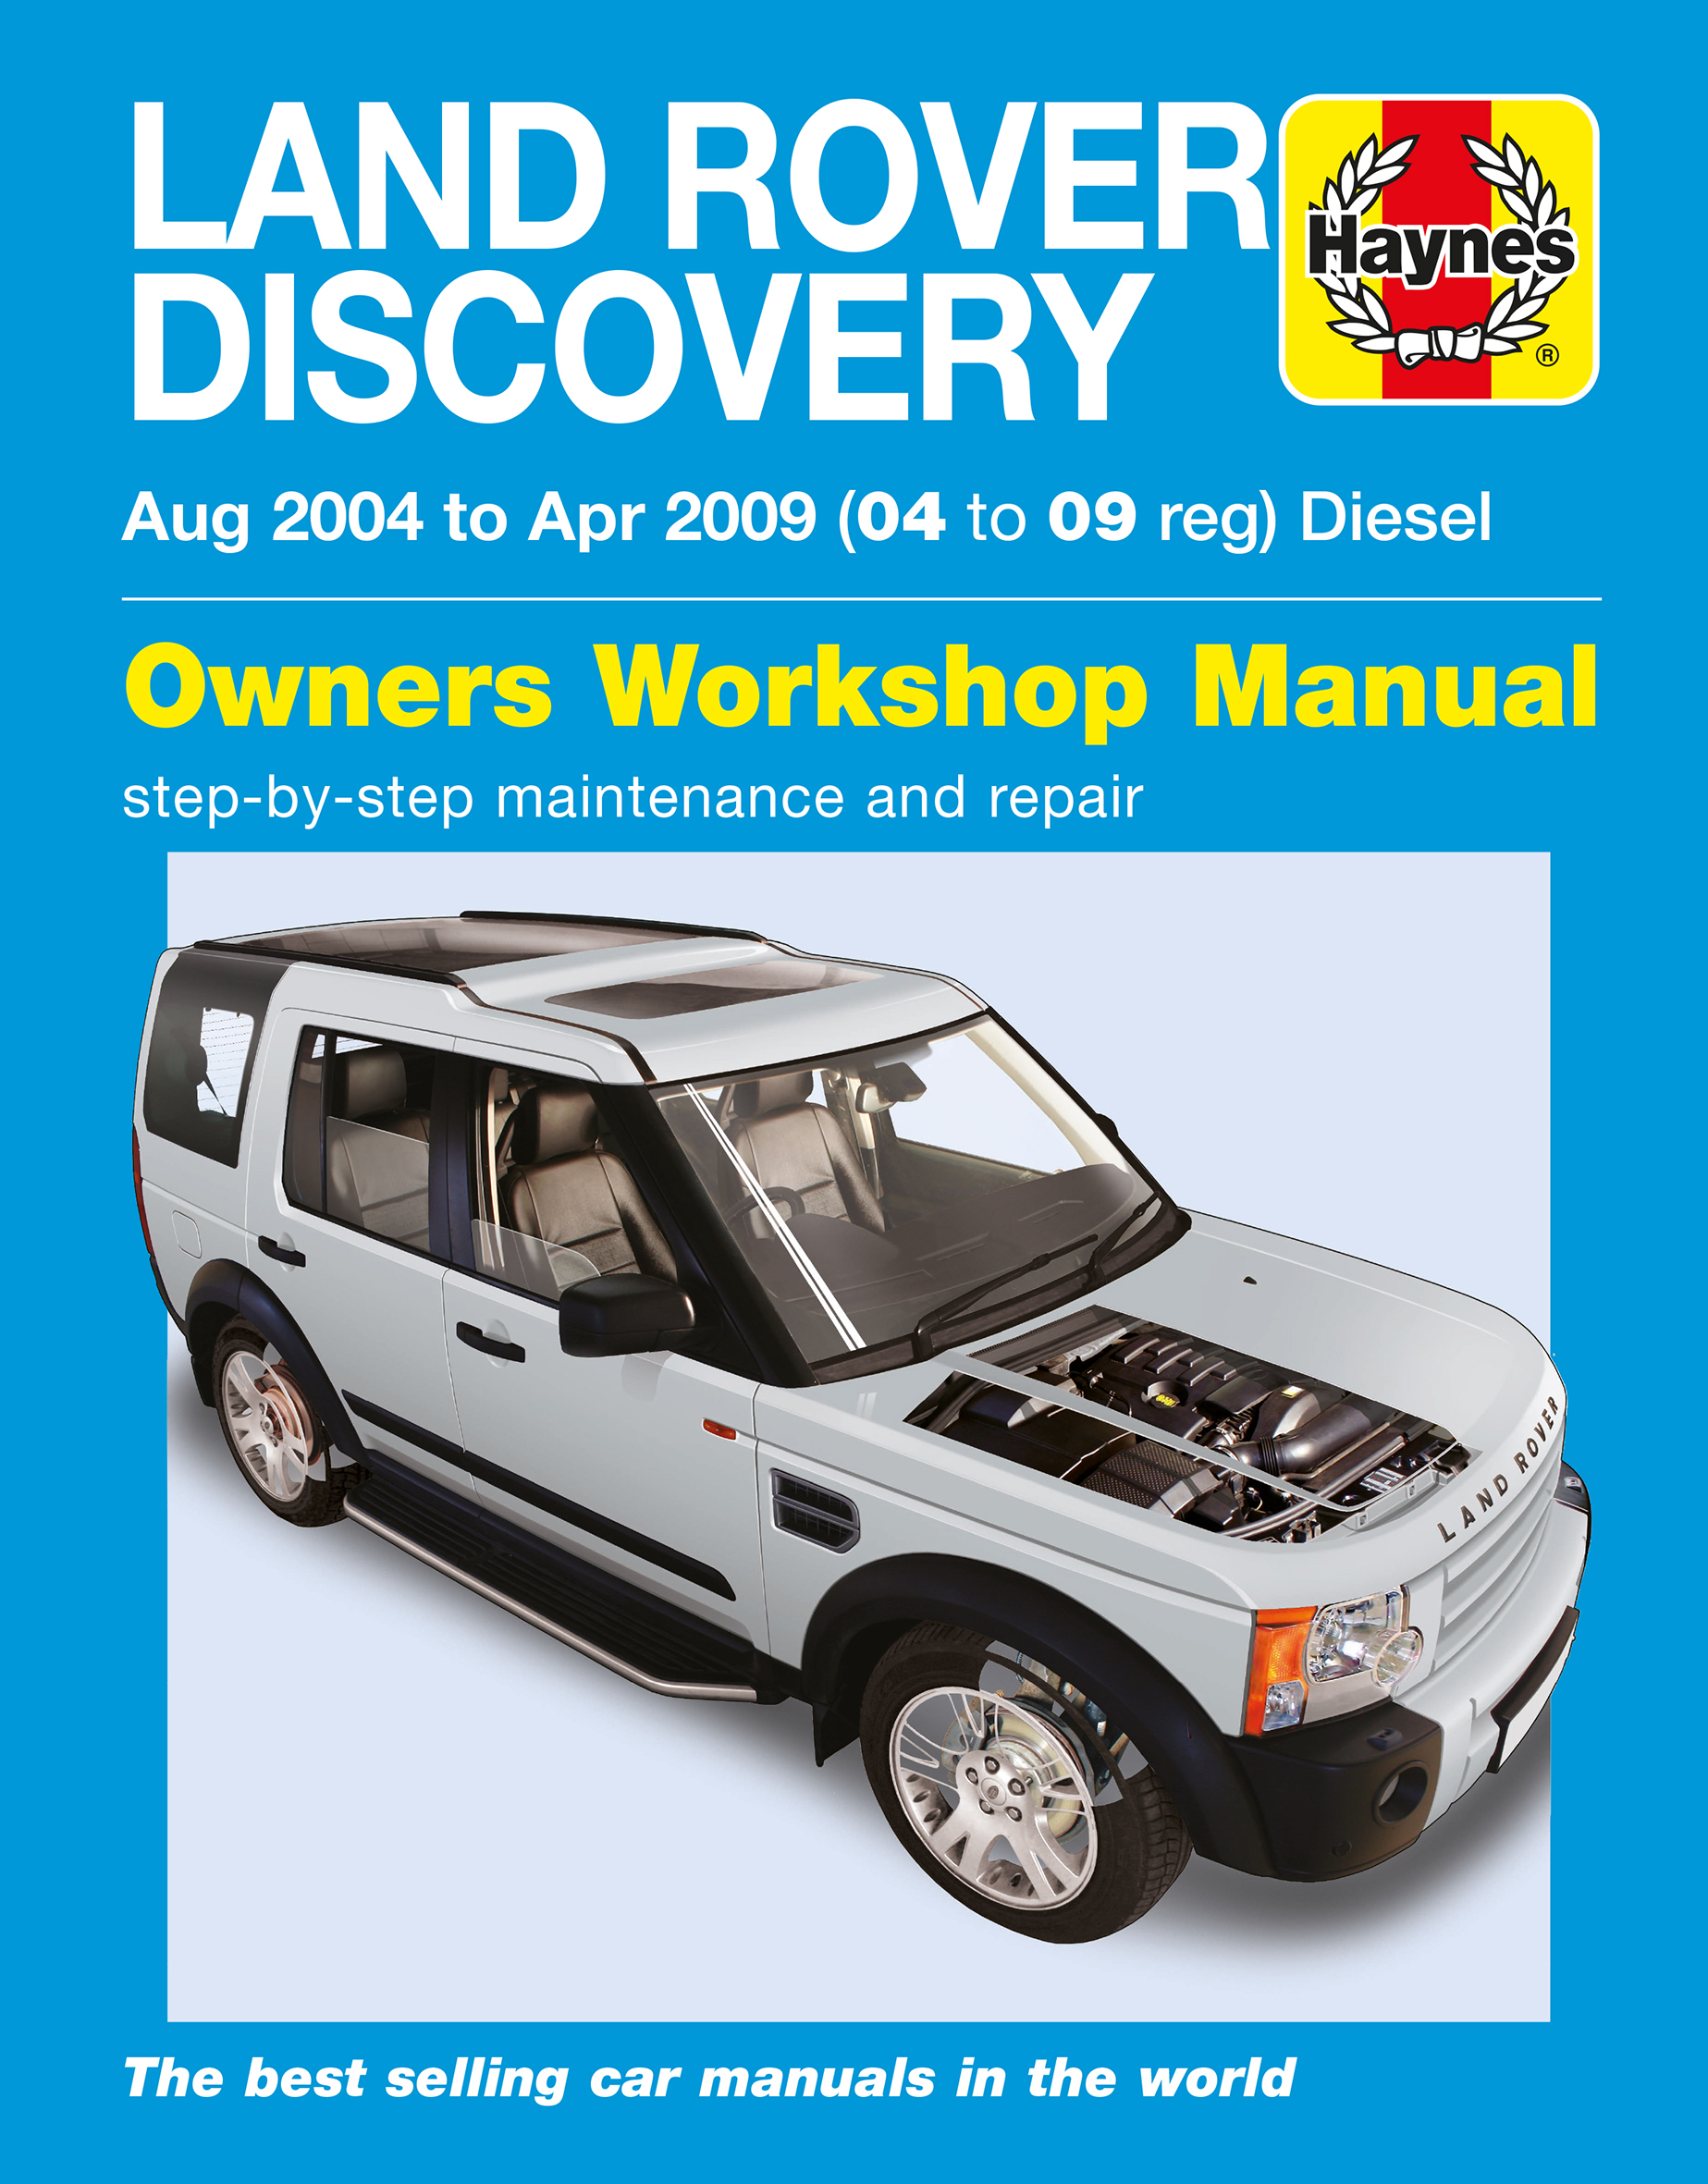 2002 Land Rover Discovery Engine Diagram Land Rover Discovery